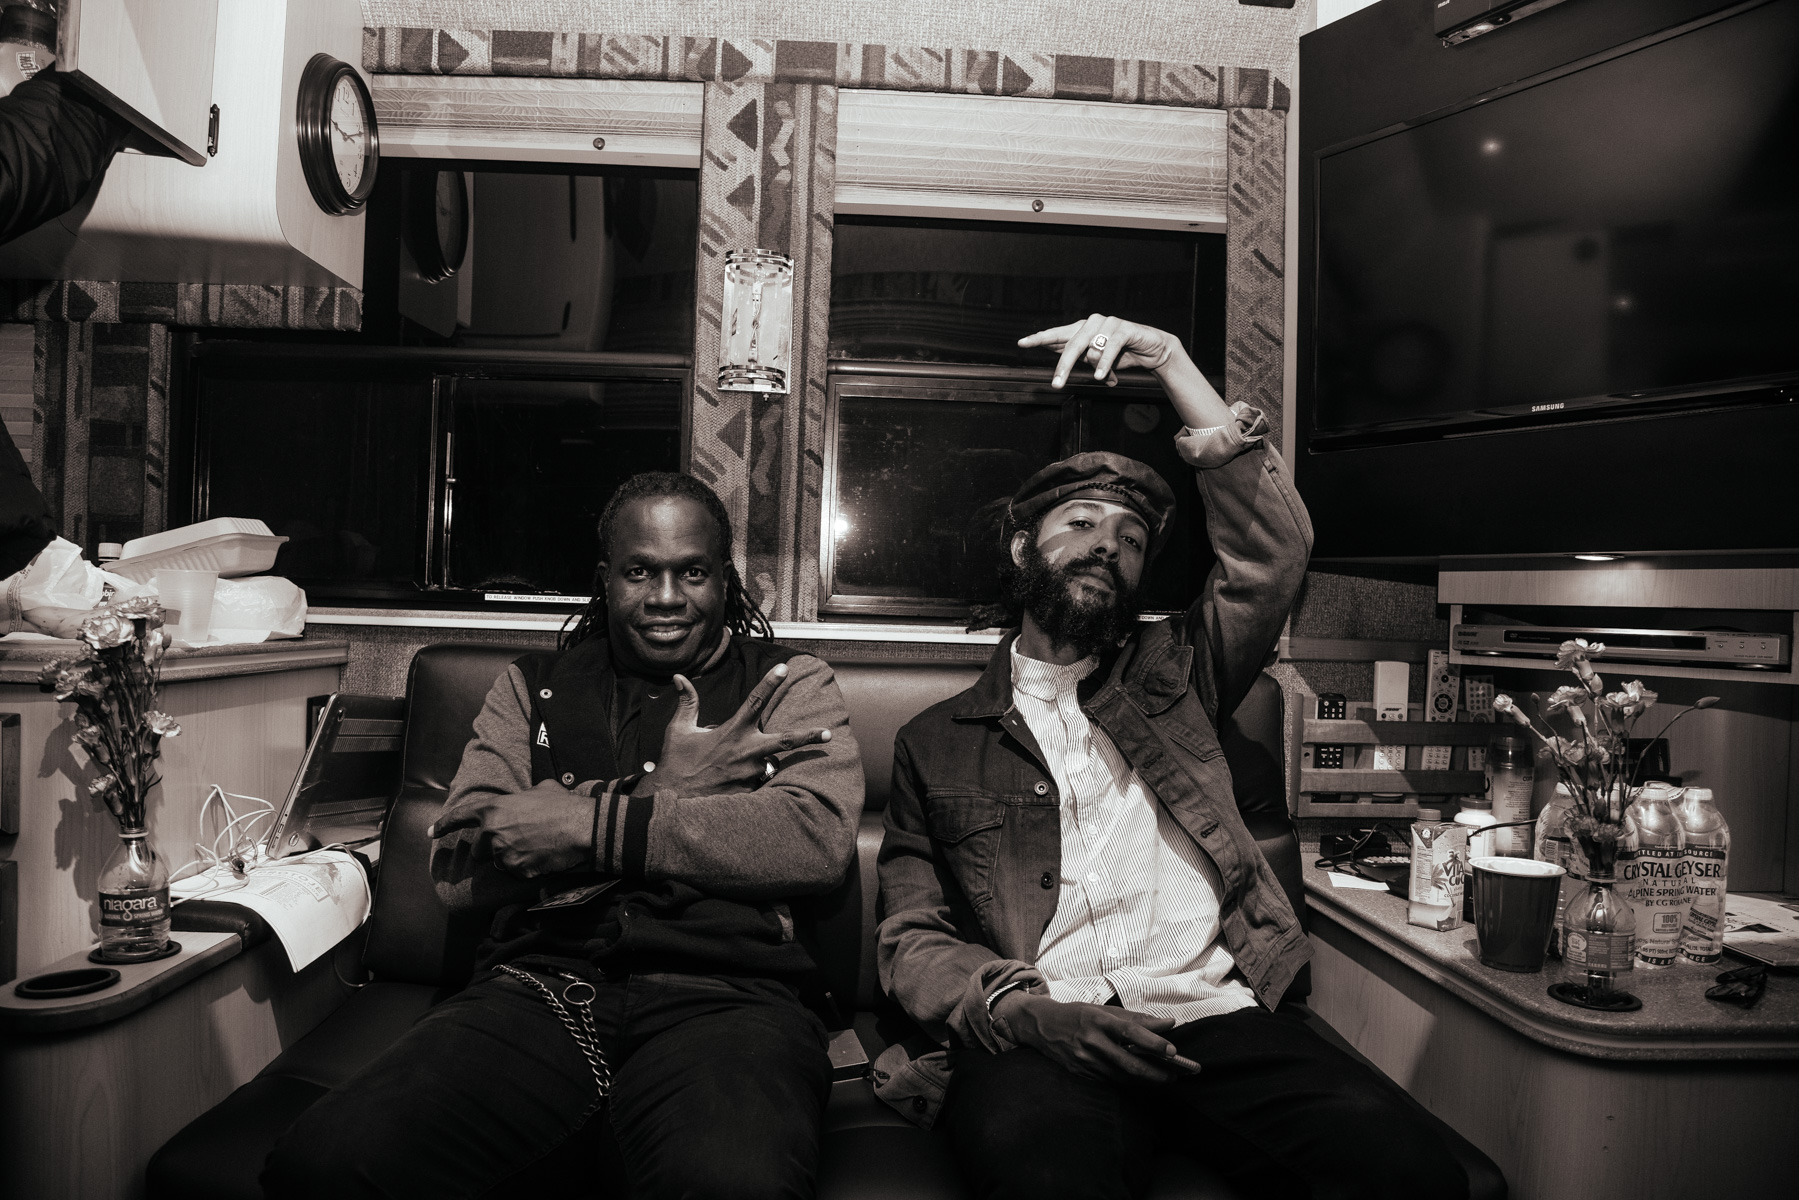 Danny Bassie and Protoje